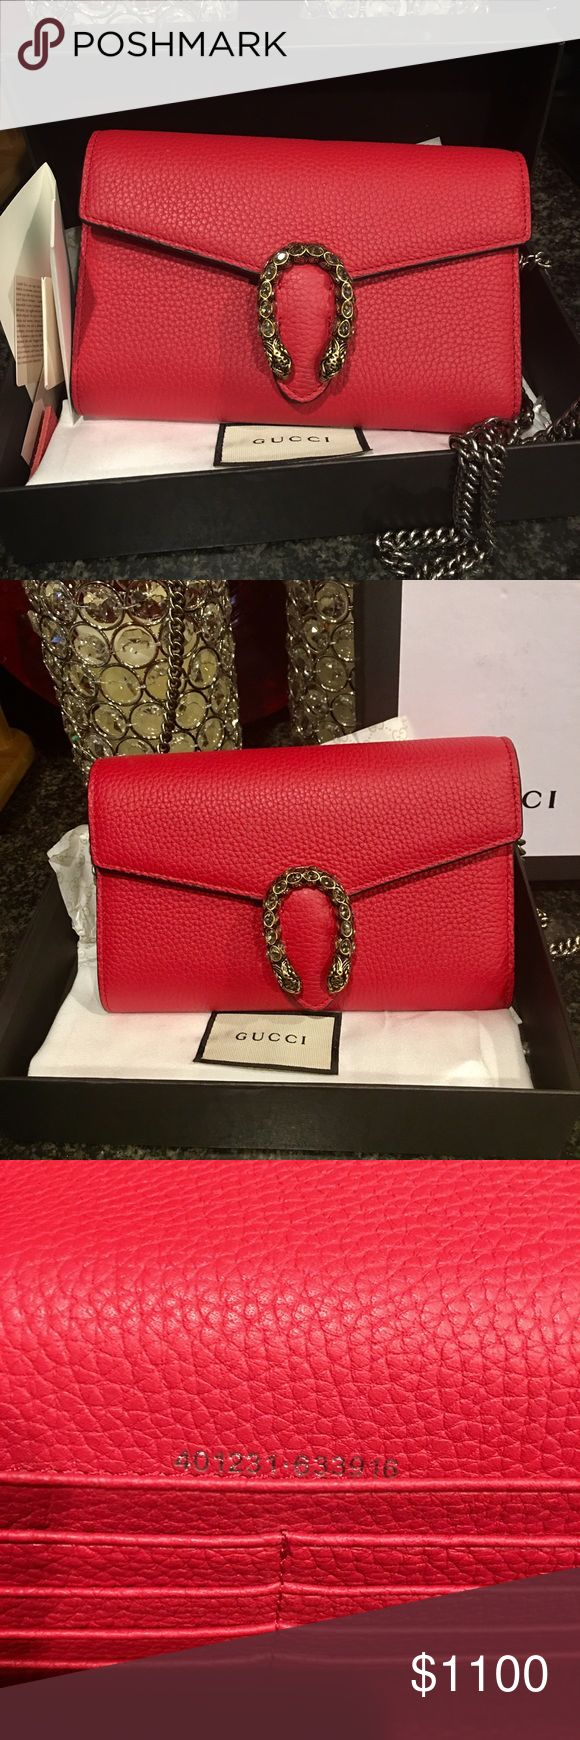 Mini Gucci Dionysus chain bag/wallet $1,400.00 Beautiful Mini Gucci Dionysus Chain Bag/Wallet. With tags dust bag and box.. In new condition. Has been used a few times but No signs of use. And in one of the hottest colors out this year. Only serious buyers please and thank you... Good Luck 🍀 to the lucky buyer that gets to take her home... Gucci Bags Mini Bags